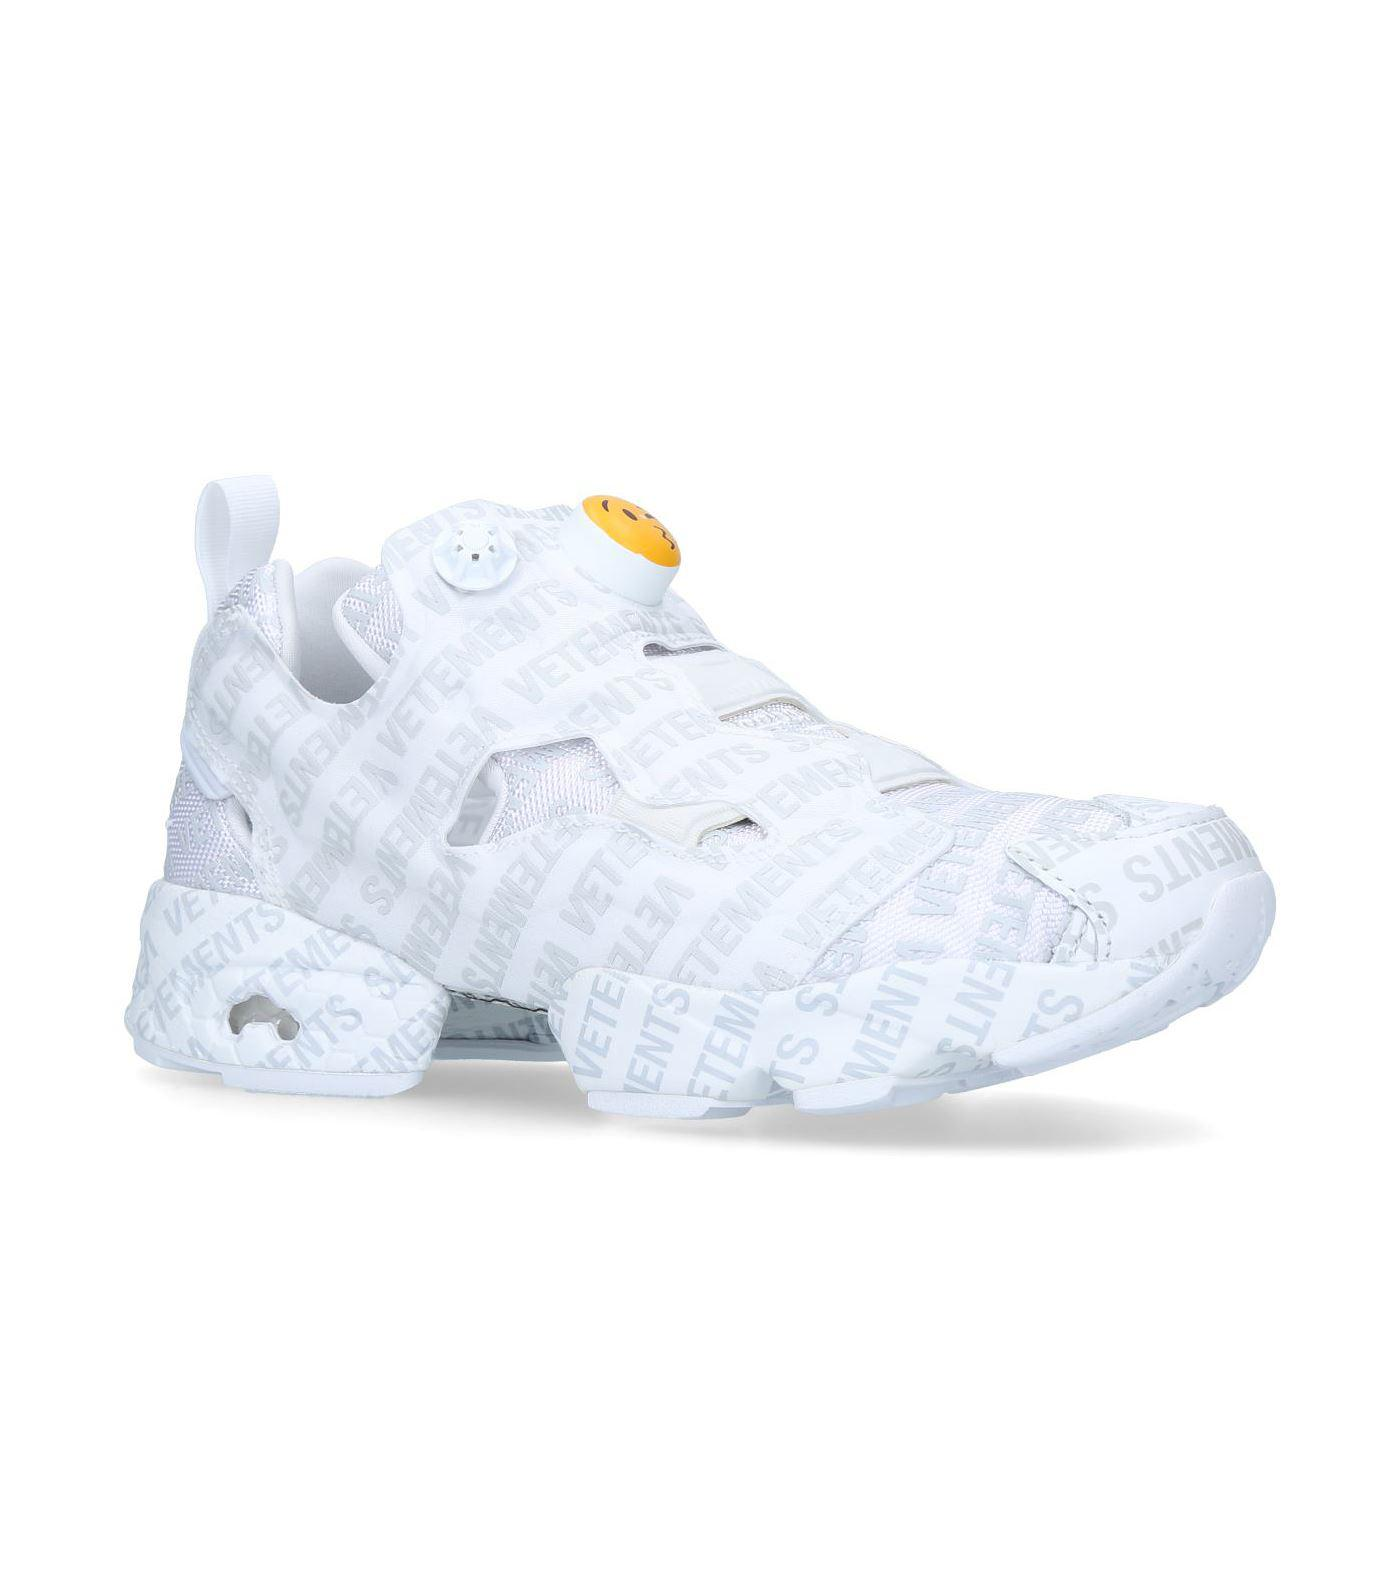 7af4c67ce5  size 7 Lyst - Vetements Logo Instapump Fury Emoji Sneakers in  Gray for Men 687129e1ce ... 278644ce8